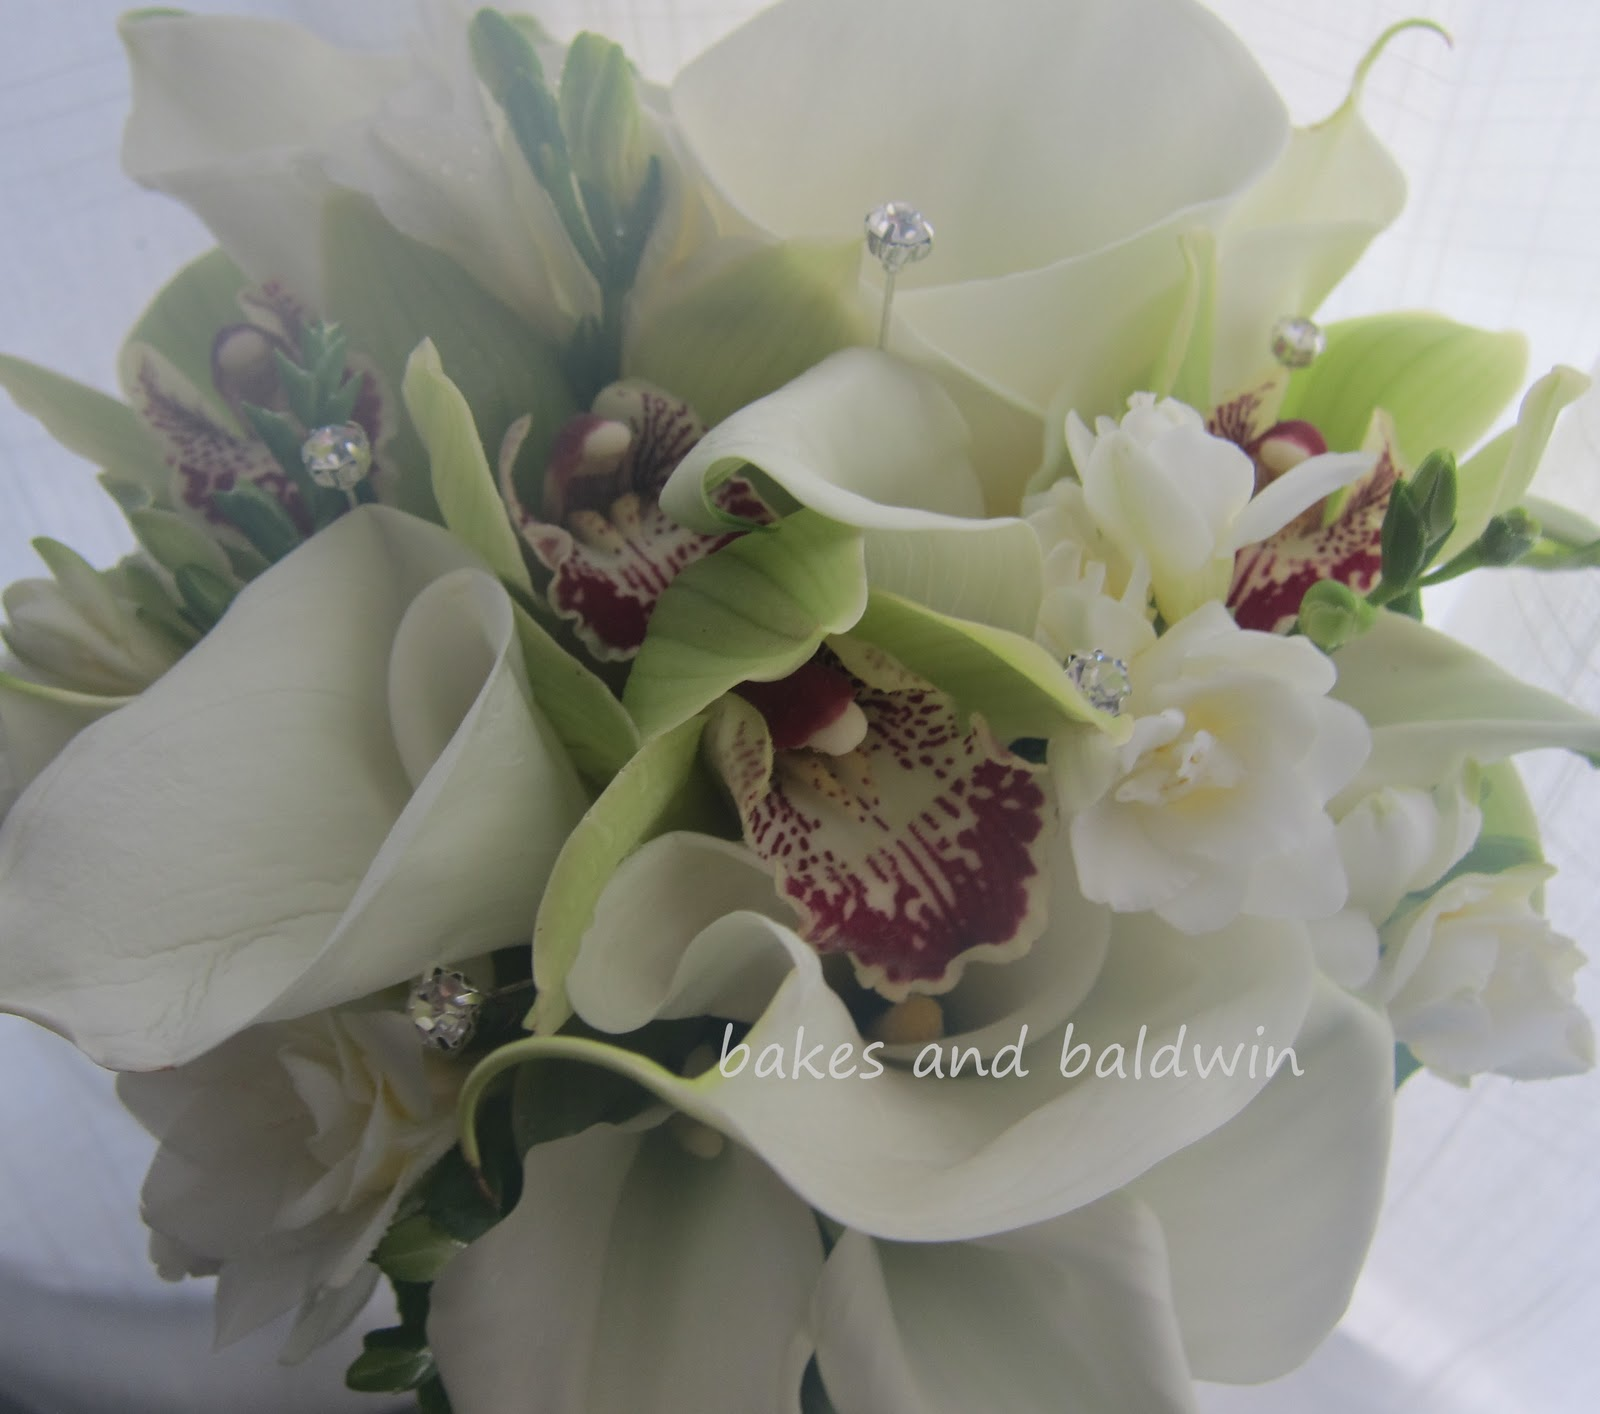 bakes and baldwin floral co ct wedding florist riverhouse and kristin 39 s beautiful day. Black Bedroom Furniture Sets. Home Design Ideas